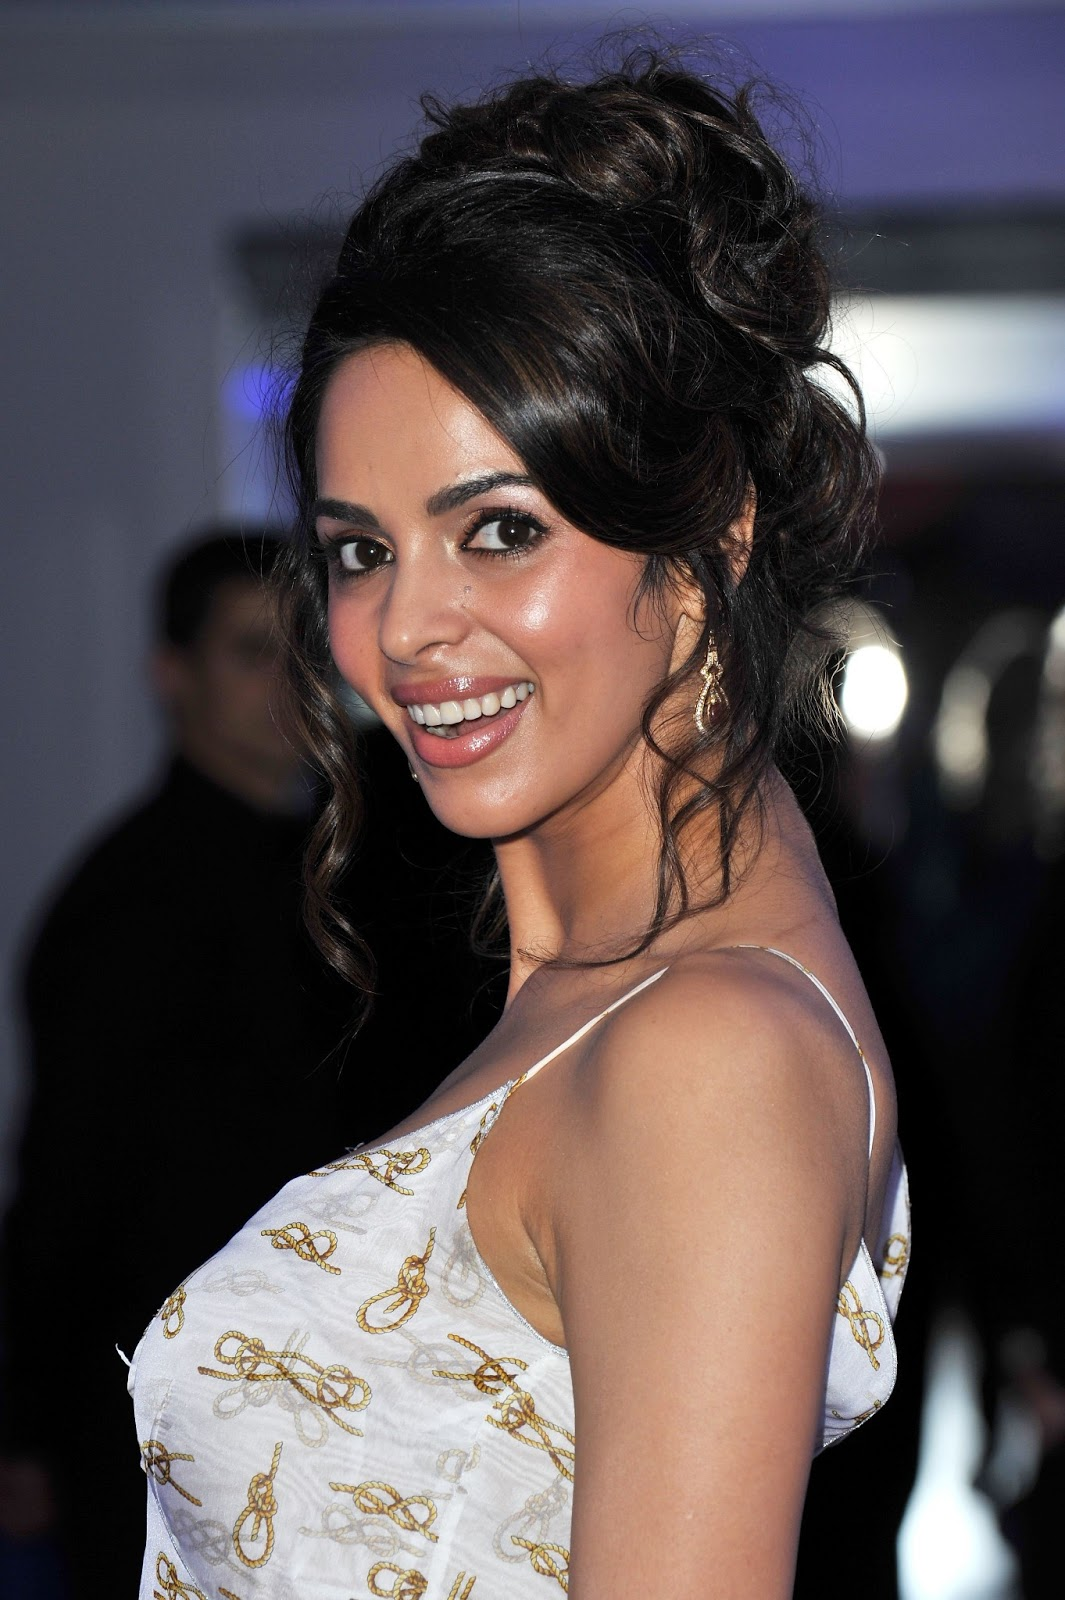 mallika sherawat,mallika sherawat muder high resolution hd